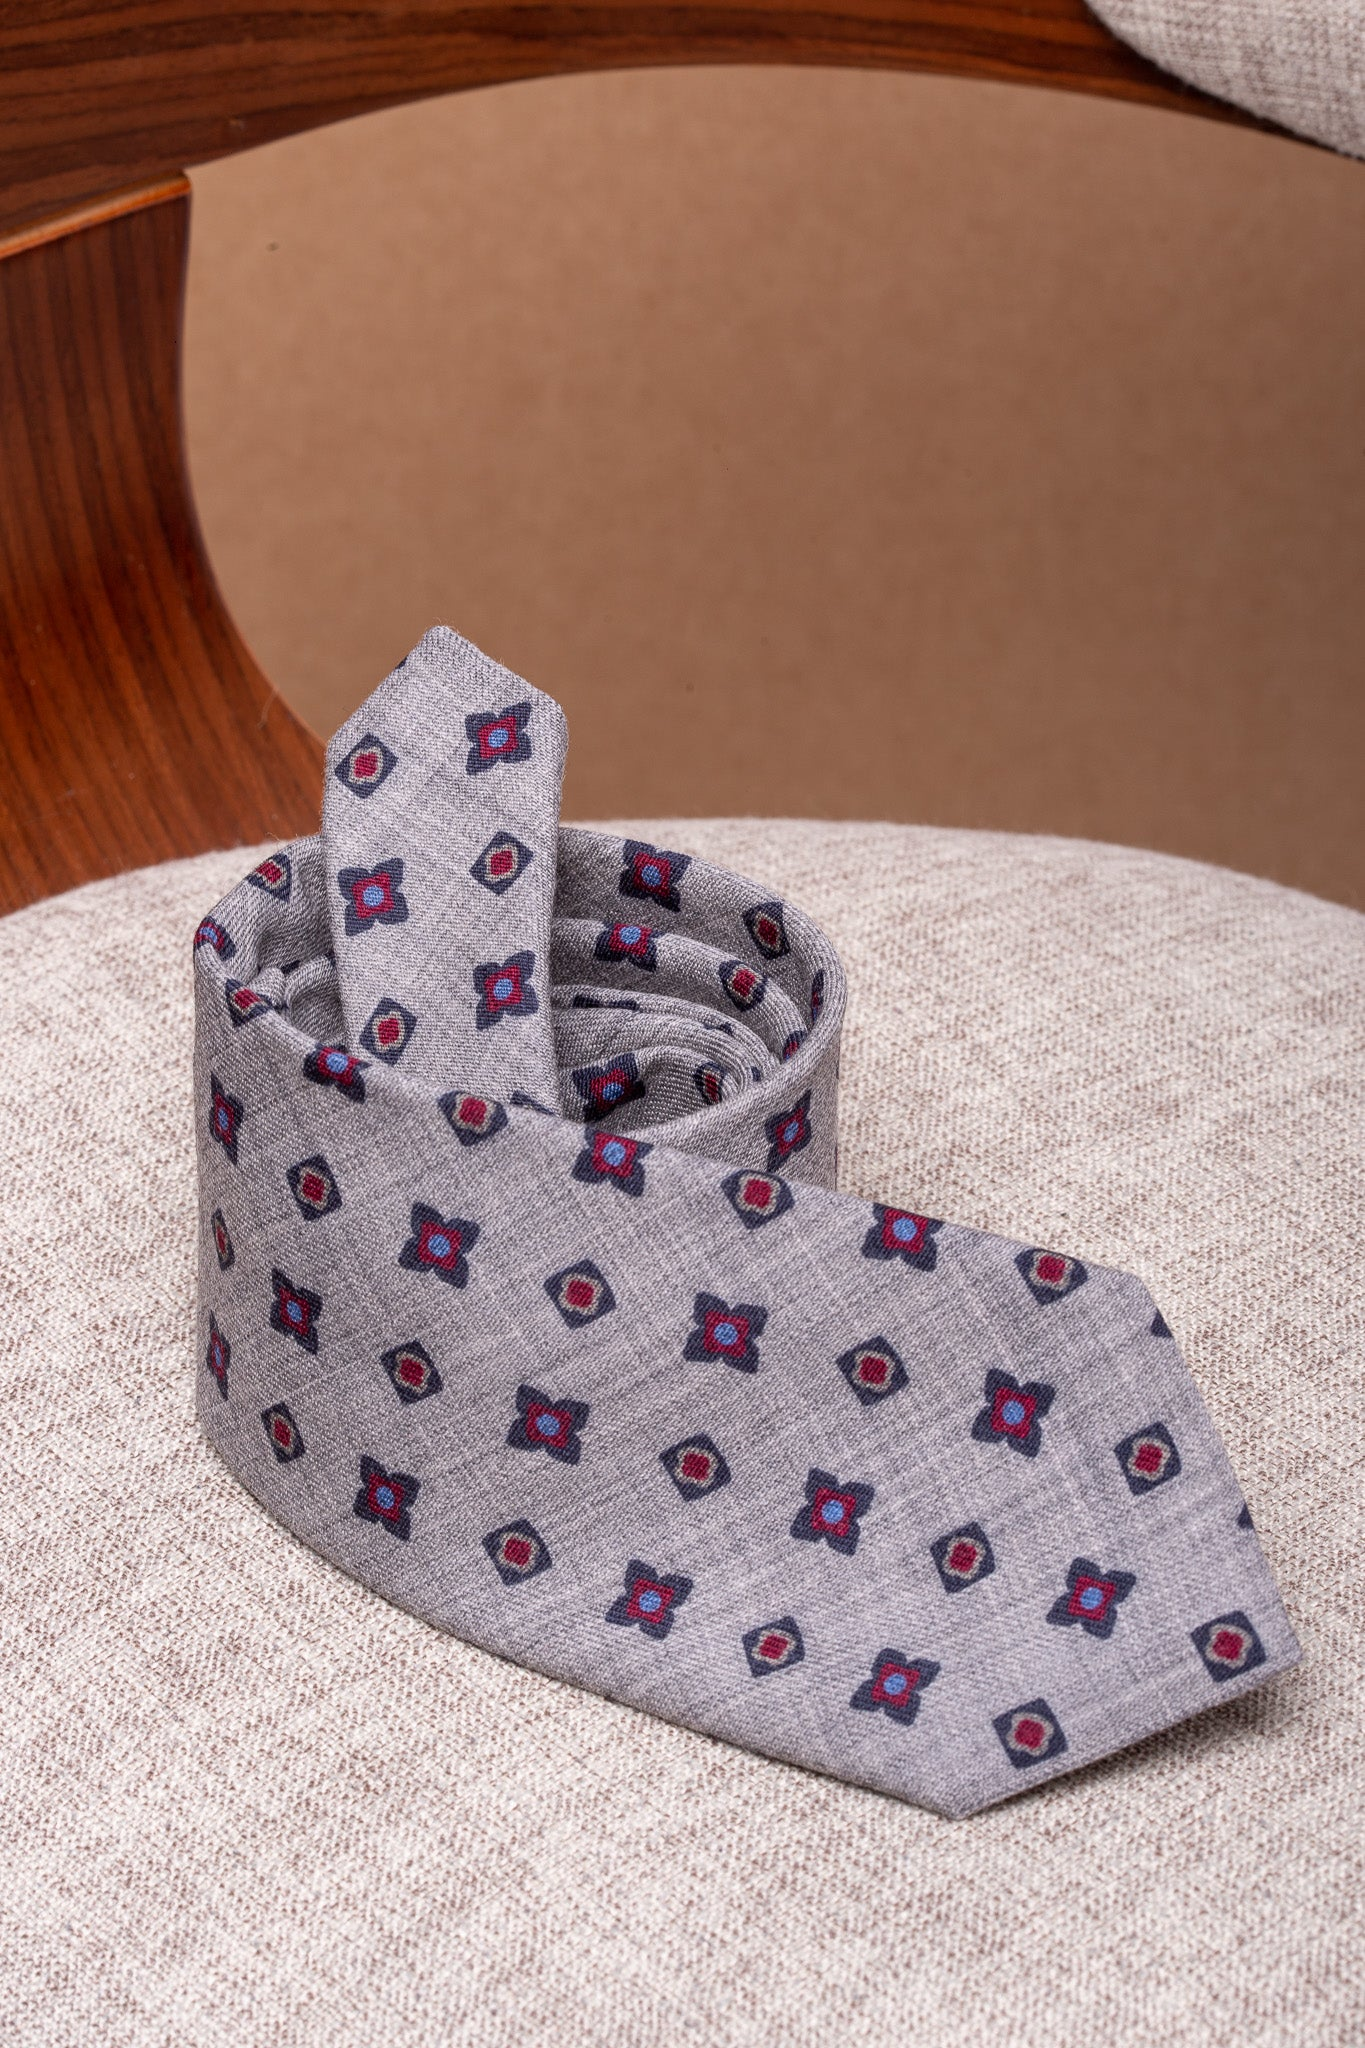 Grey tie with blue and red flowers - Made In Italy